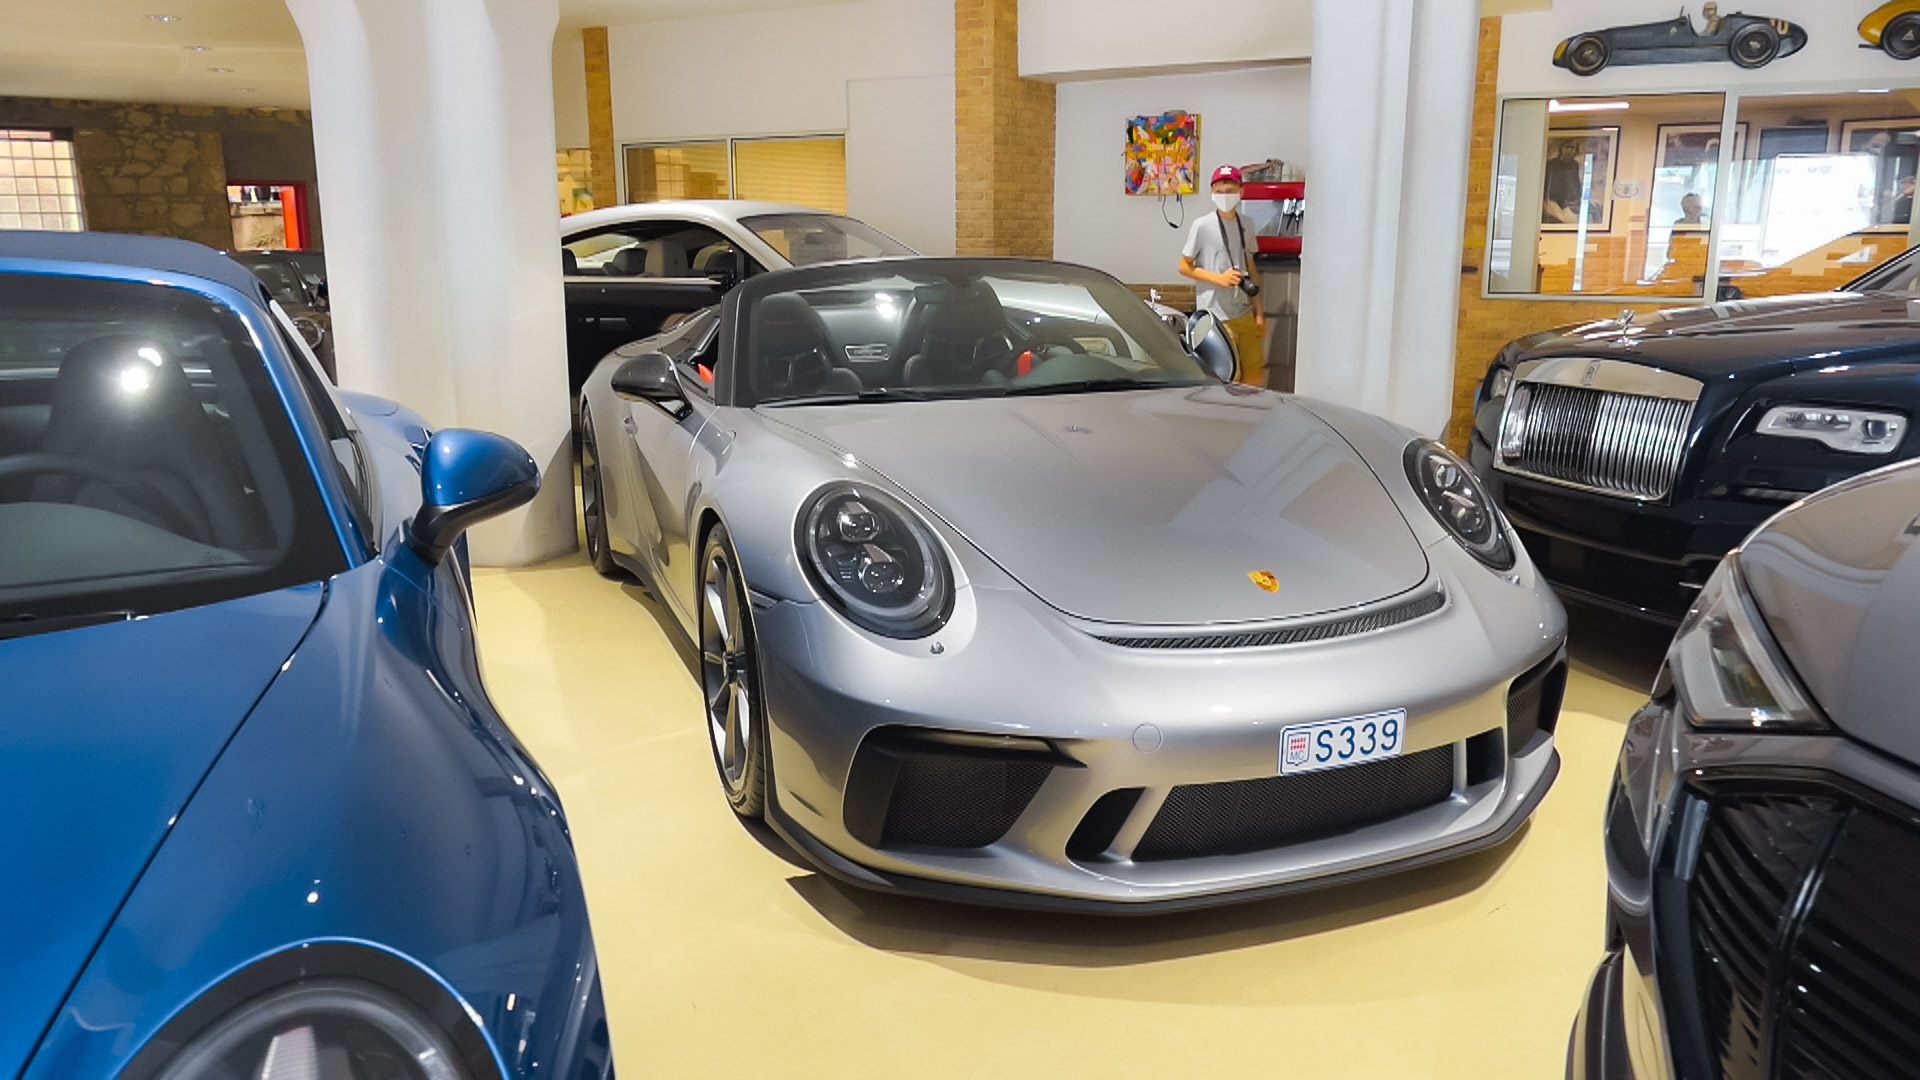 Porsche 991 Speedster - S339 (MC)